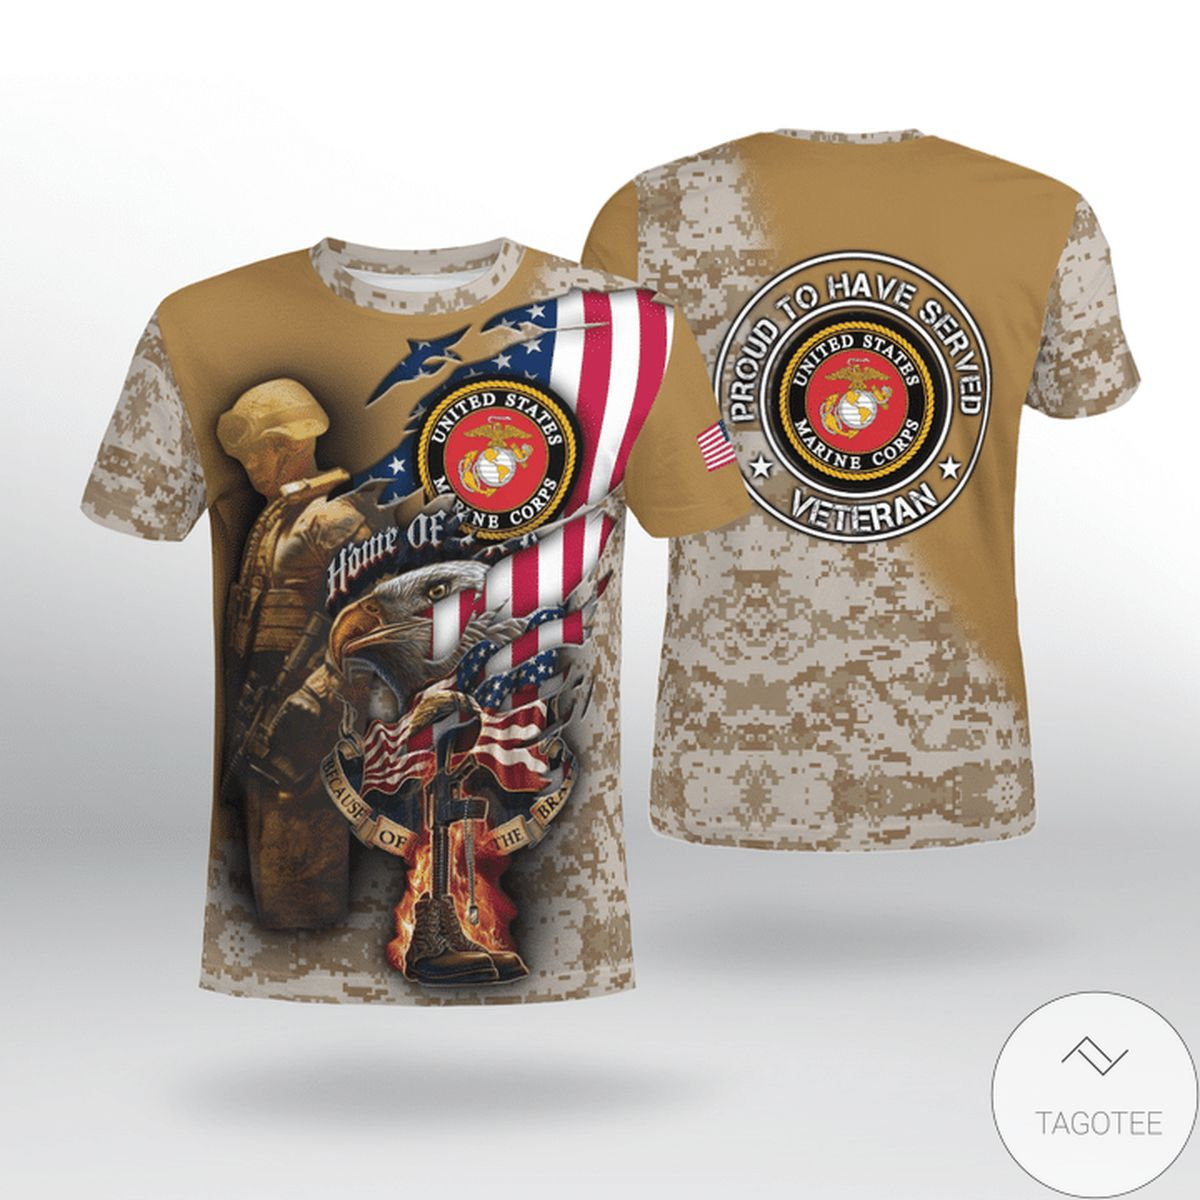 Home Of Us Marine Corps Veteran Proud To Have Served Shirt